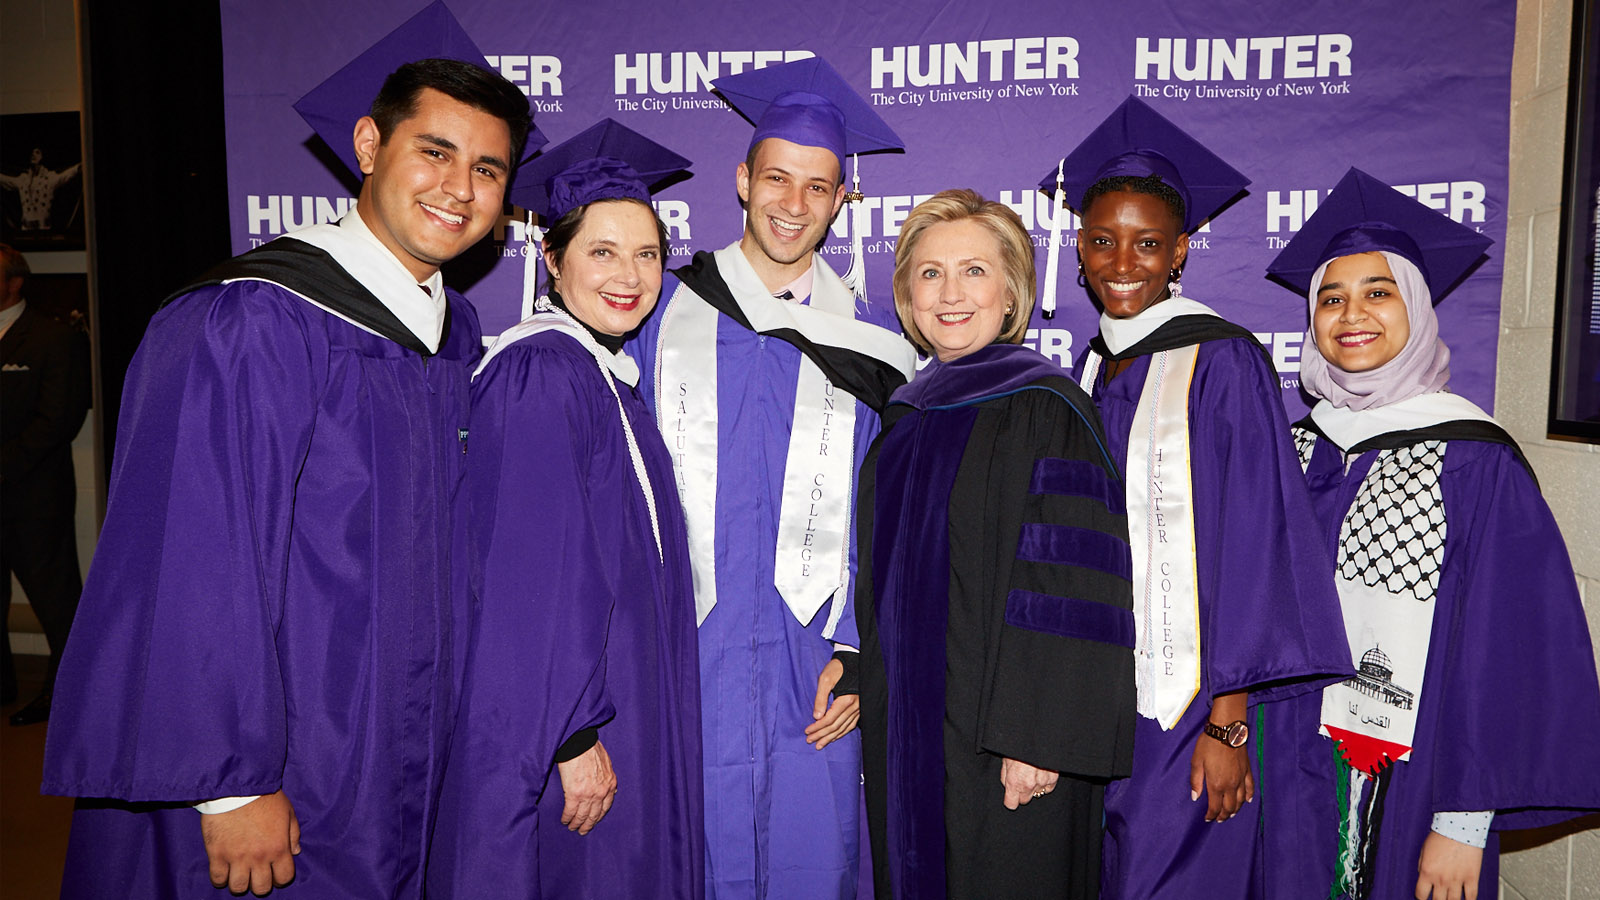 Hillary Clinton and Isabella Rossellini with Hunter College graduates